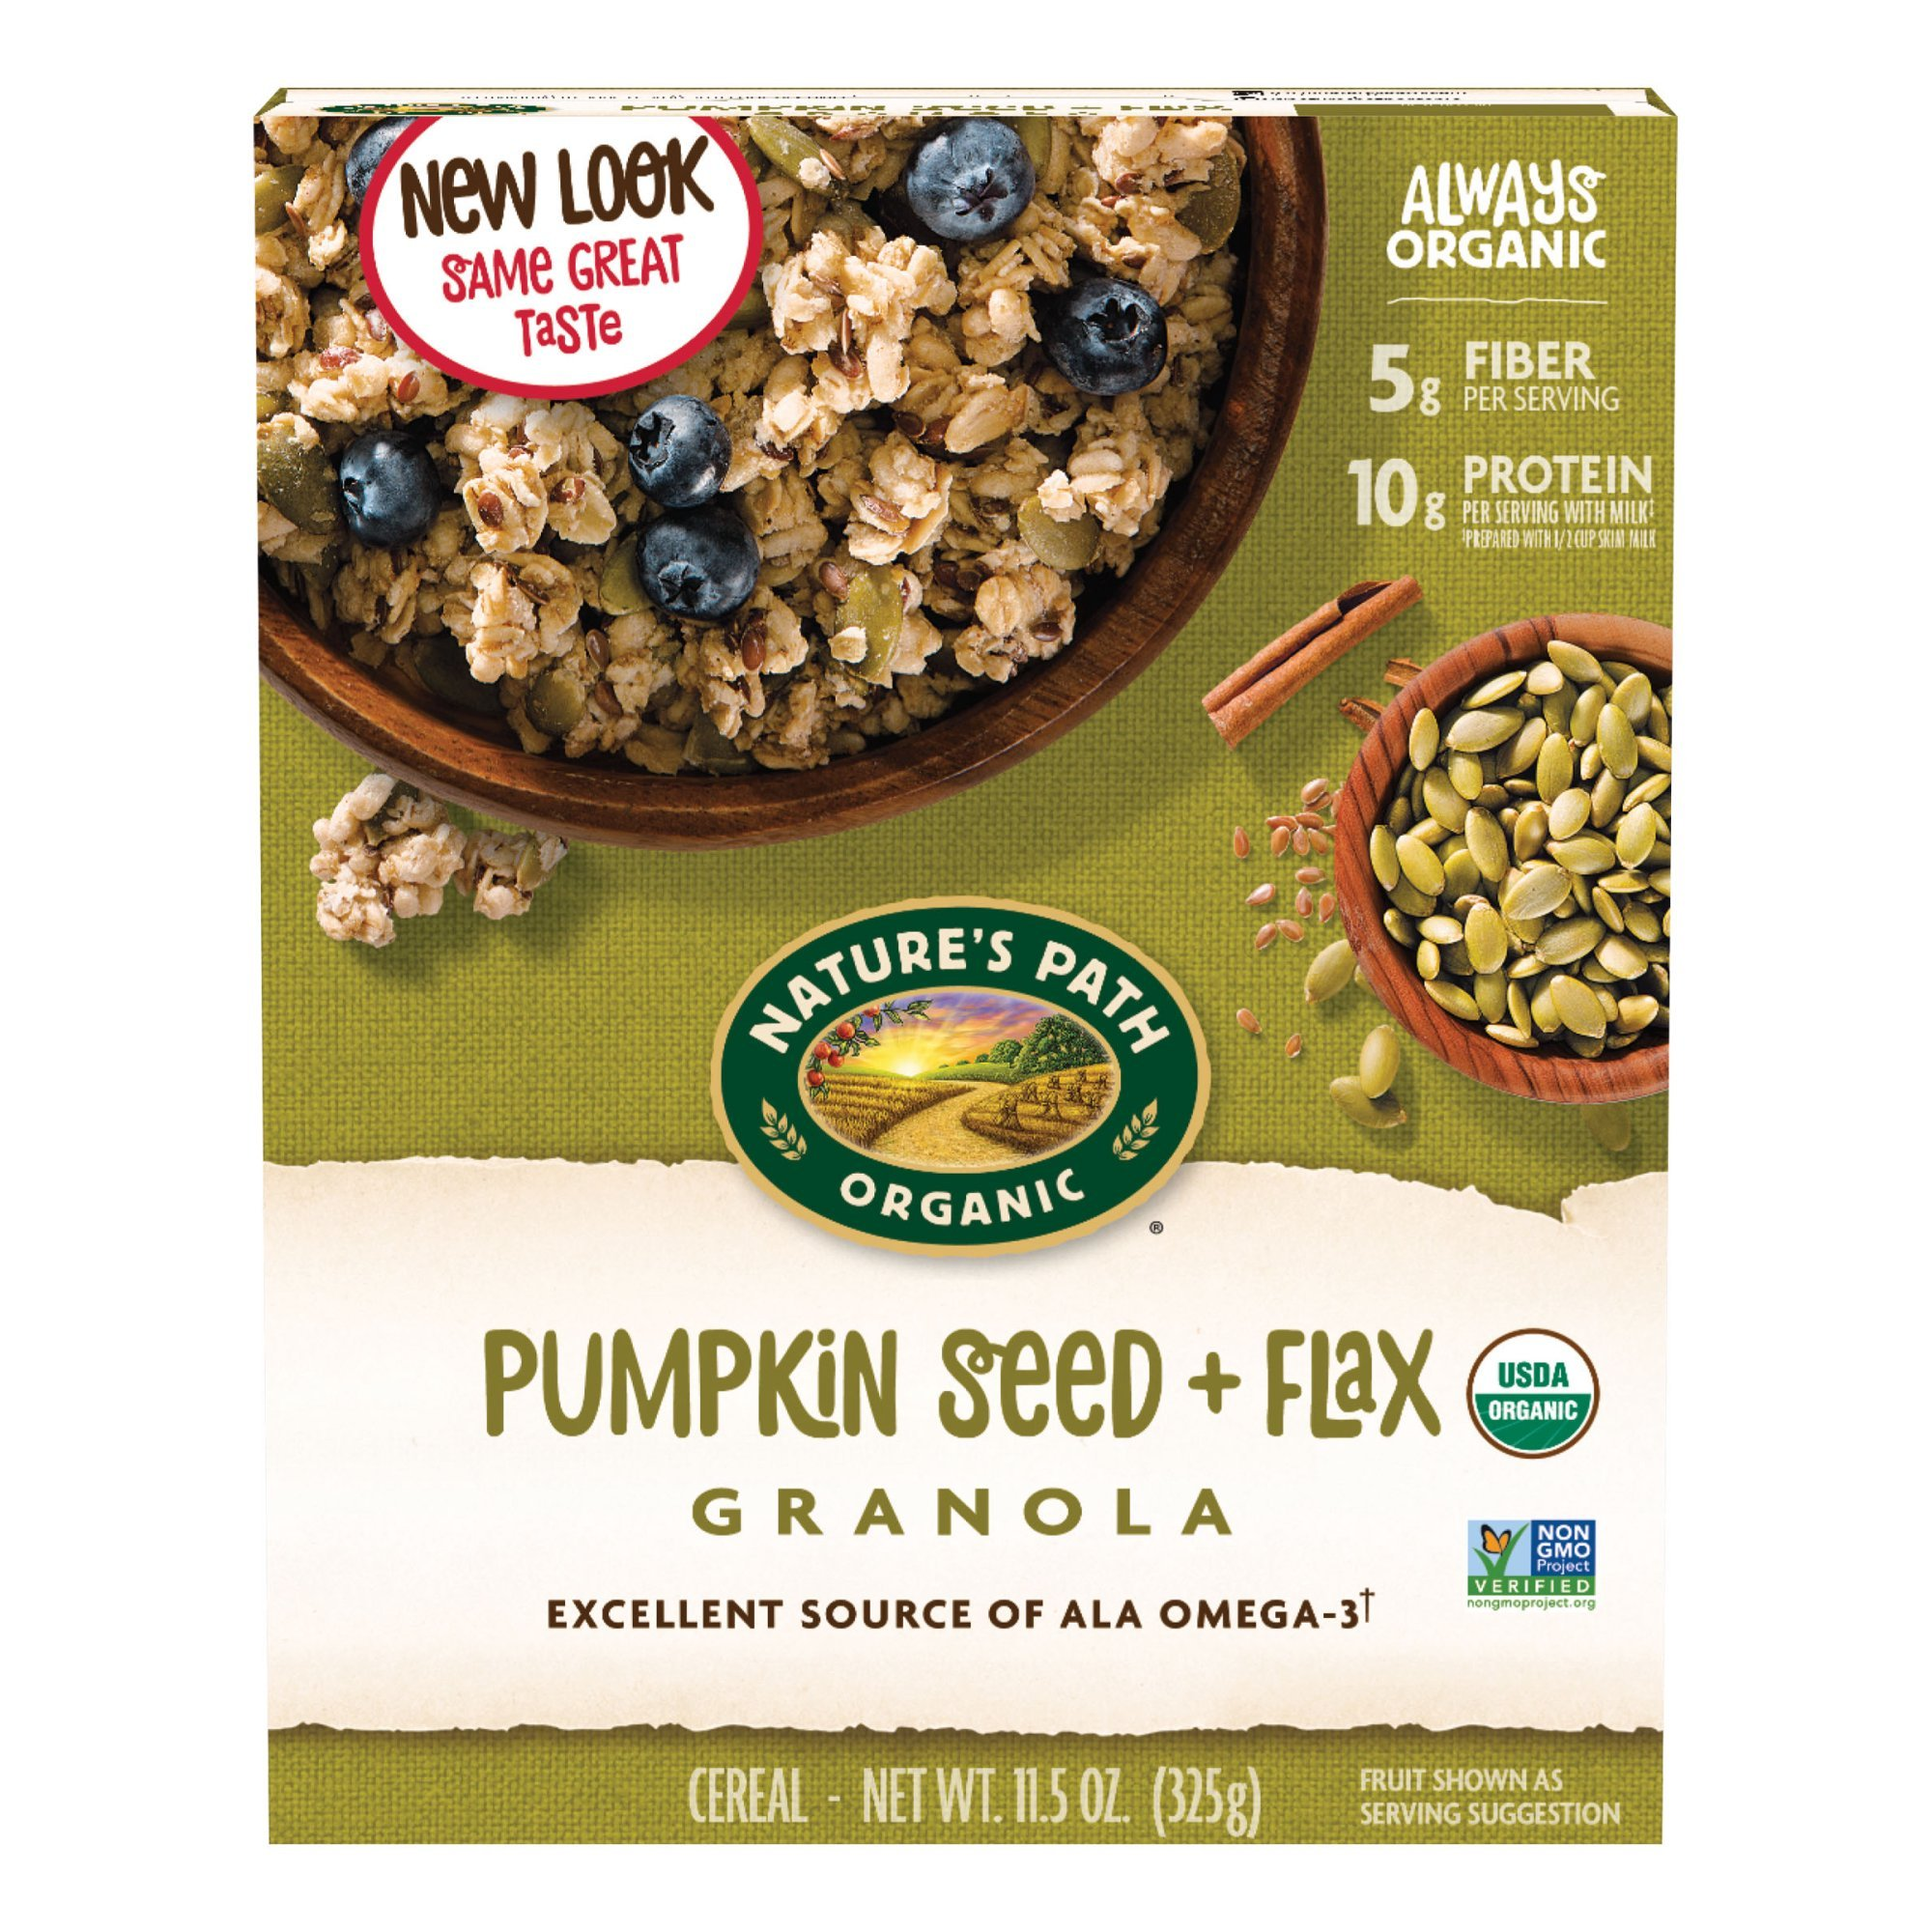 Amazon.com: Natures Path Organic Pumpkin Seed & Flax, 35.3